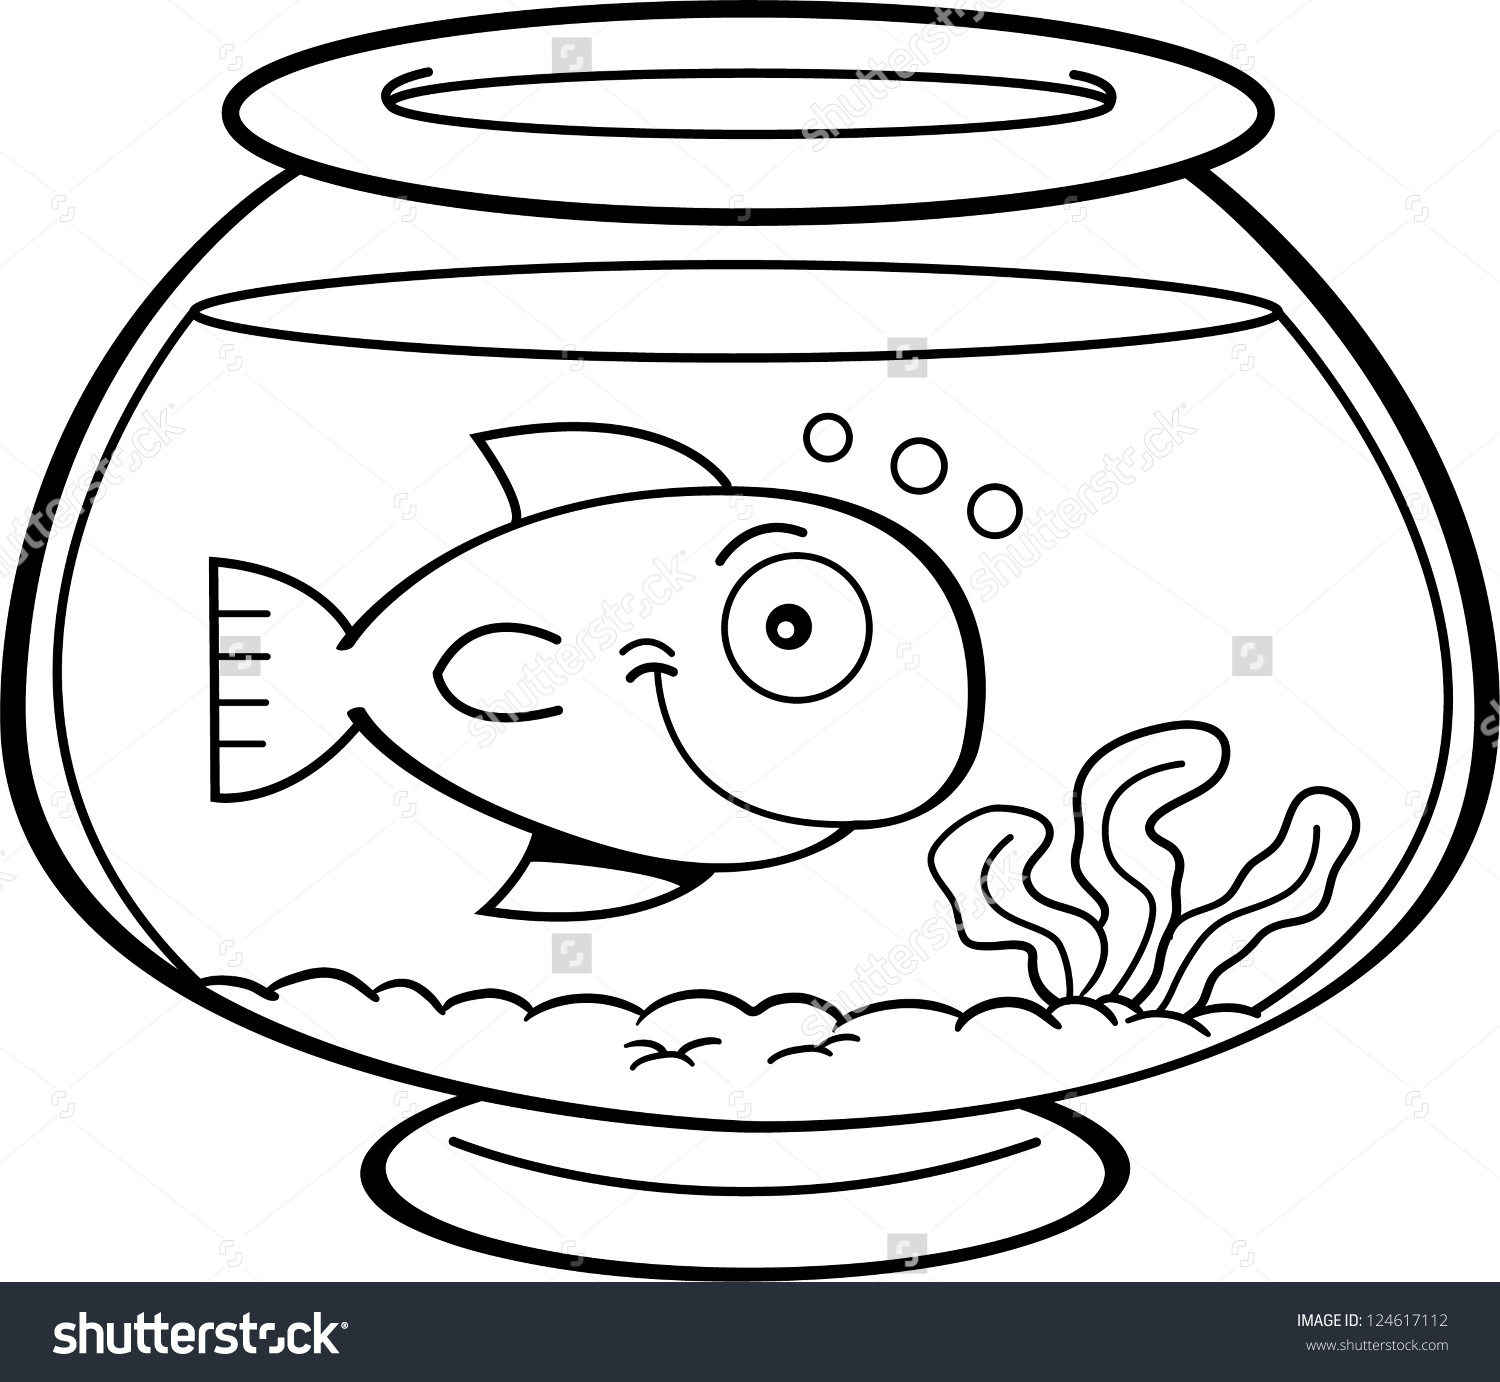 Aquarium Fish Drawing at GetDrawings